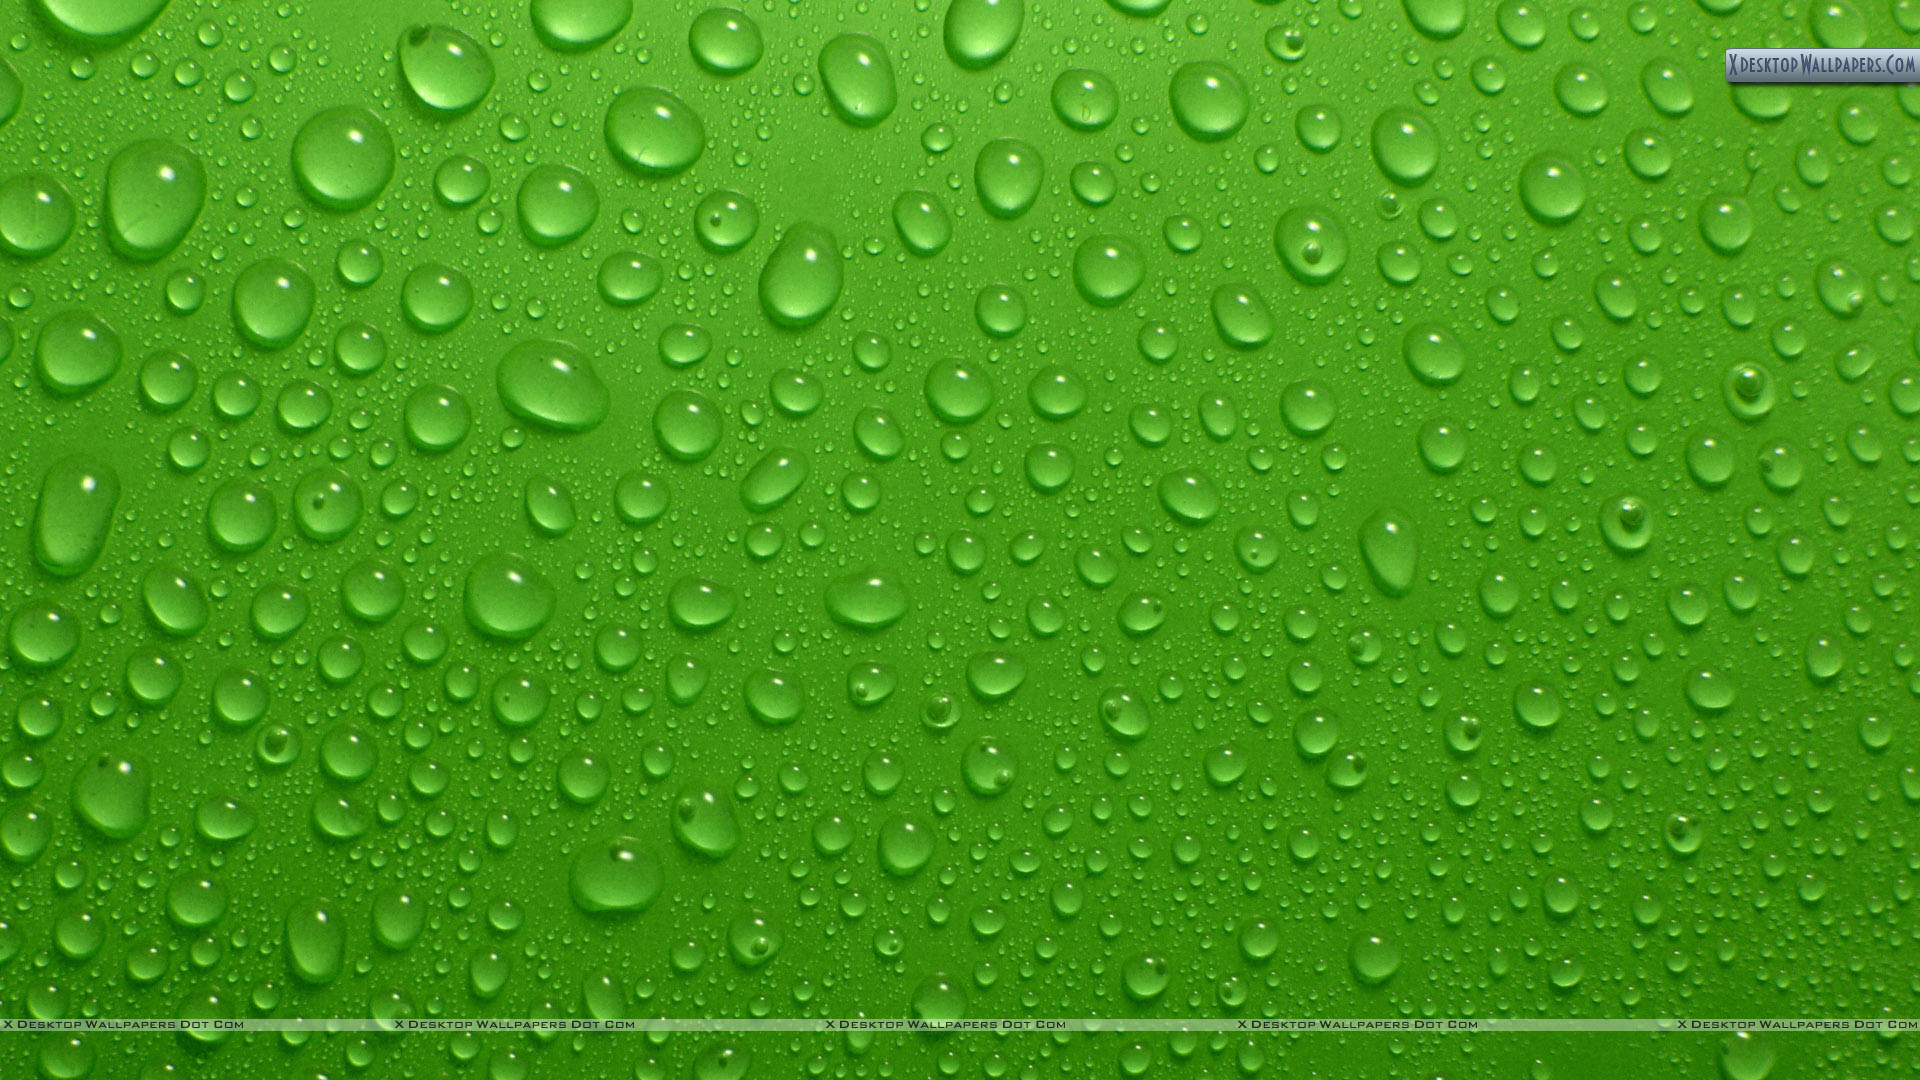 Drops On Green Background Wallpaper 1920x1080